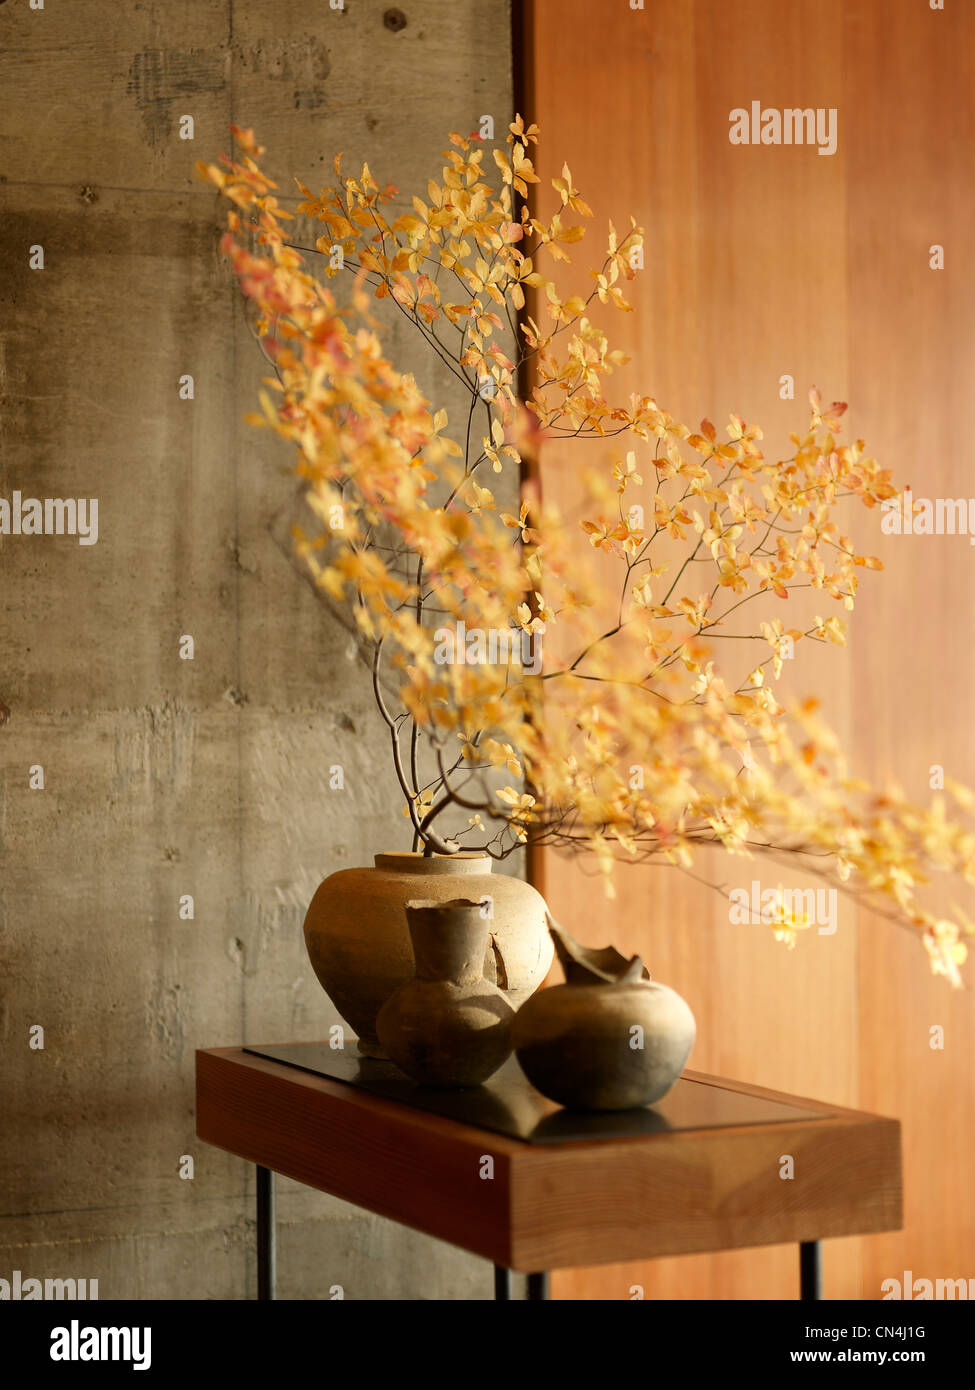 Japan, Tokyo, feature: the Palace of Tokyo, vases and tree branches - Stock Image